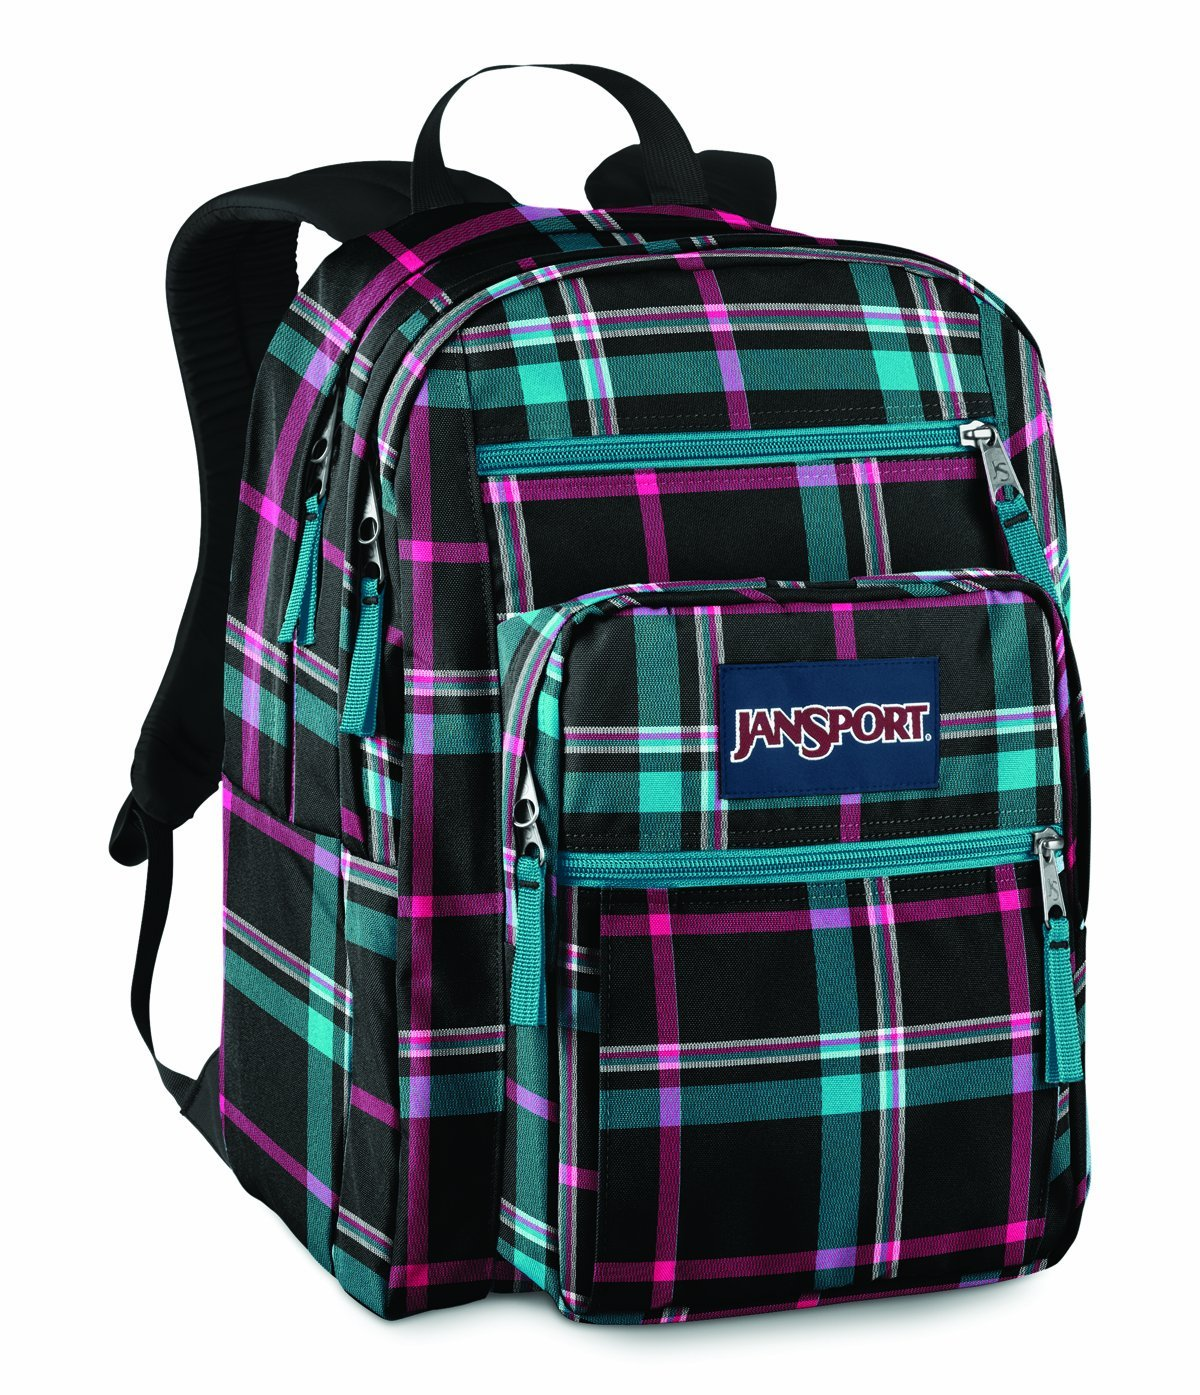 Jansport Backpacks For Girls t6cqpKnc